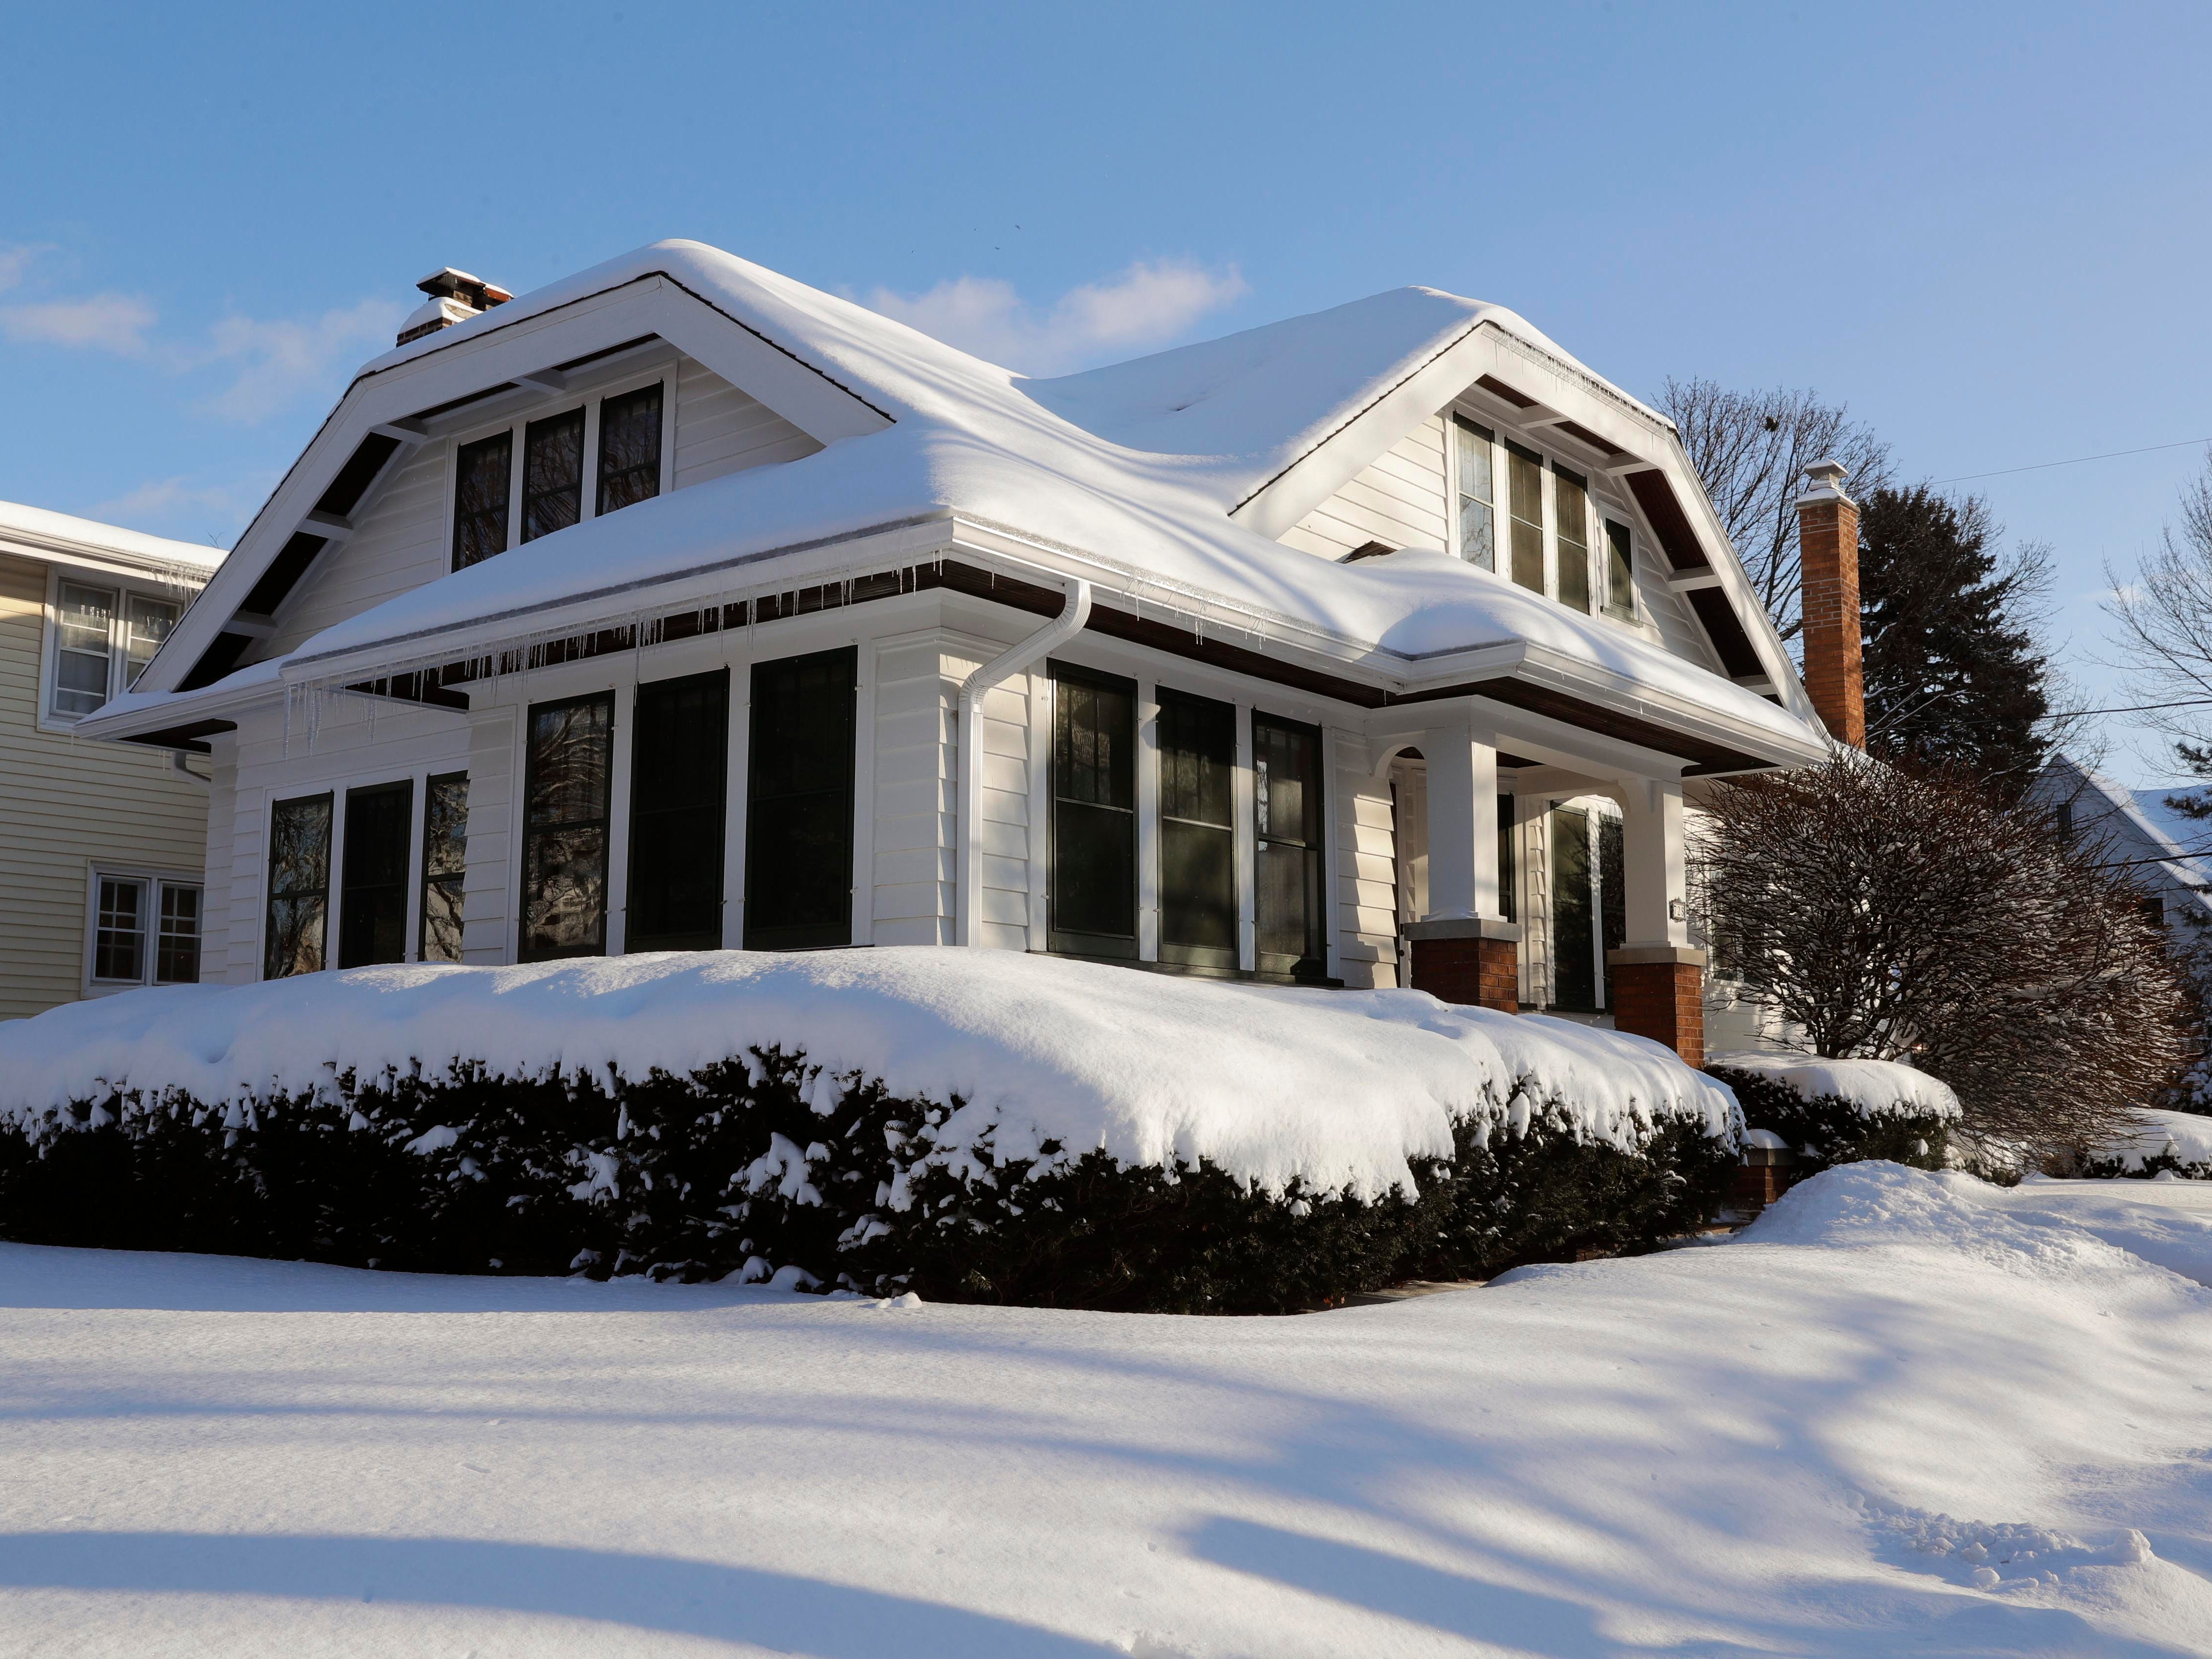 Aileen Smith turned a five-bedroom, 1 1/2-bath bungalow into a 3-bedroom, 2 1/2-bath home.